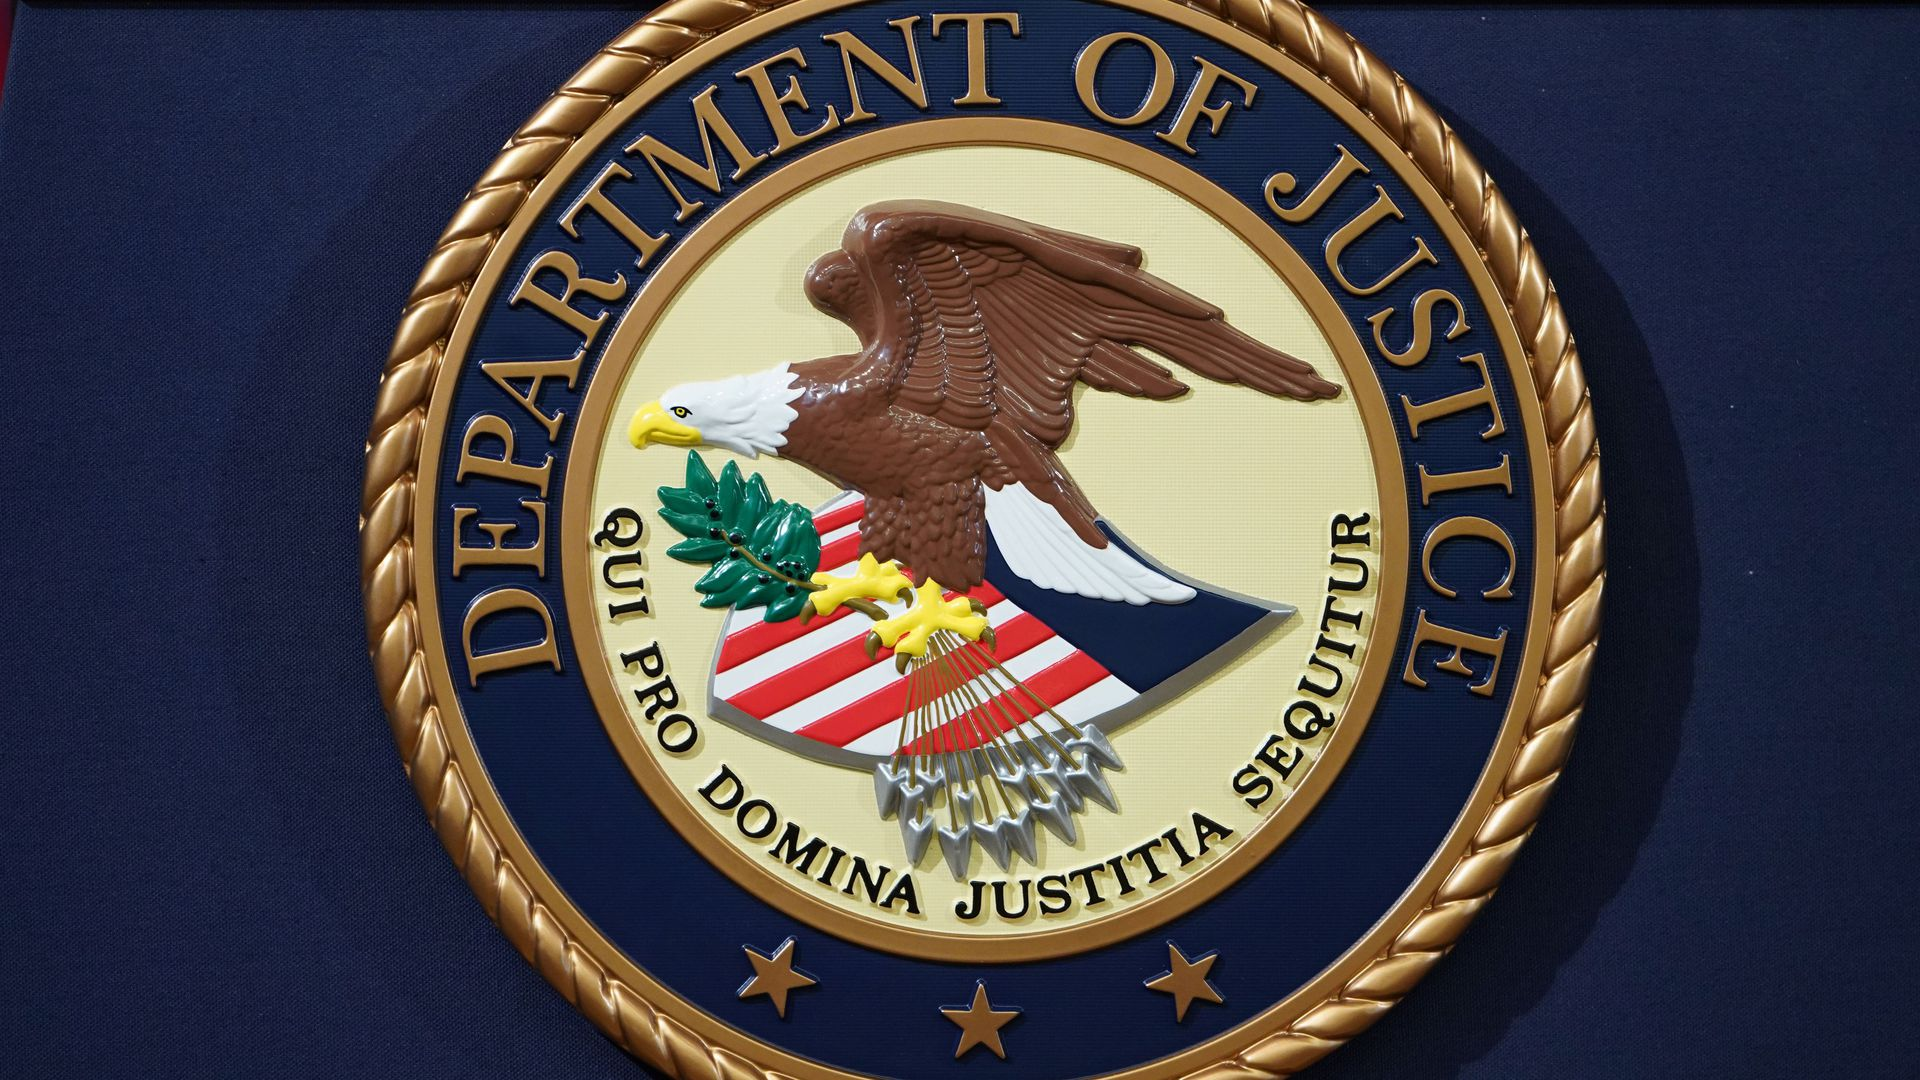 This image is a close-up of the Department of Justice seal.